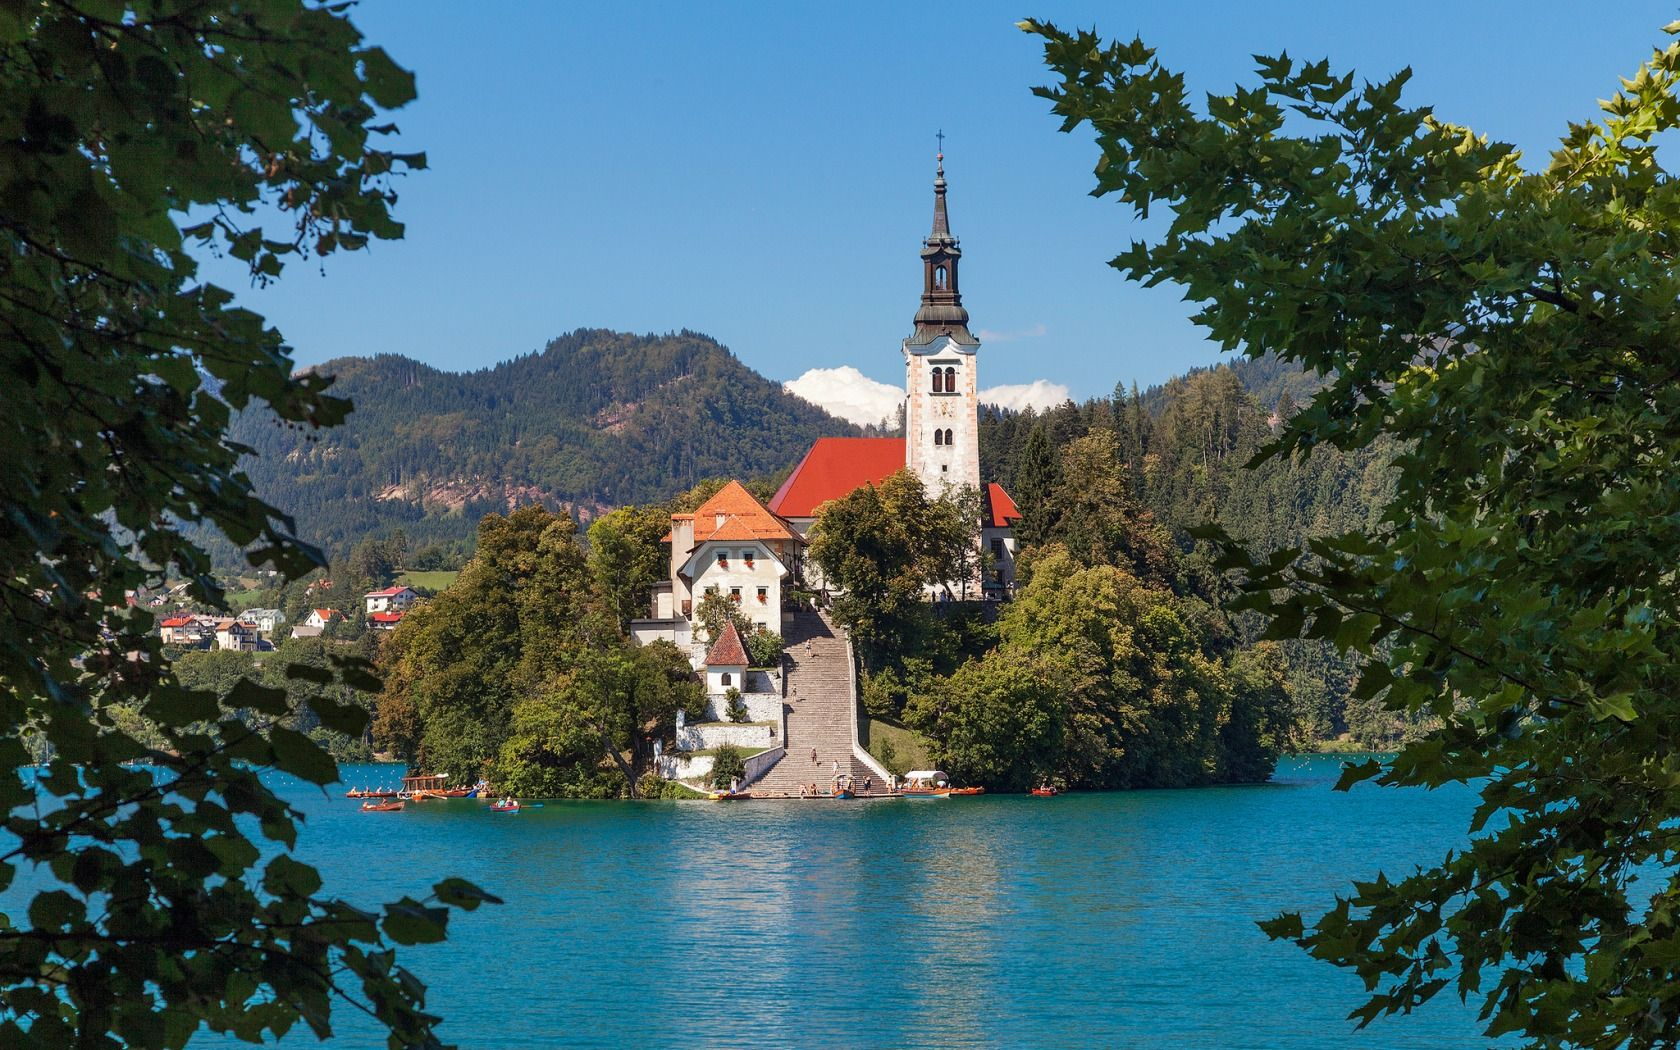 Pin On Inspiration For Work Beautiful photo church on bled island